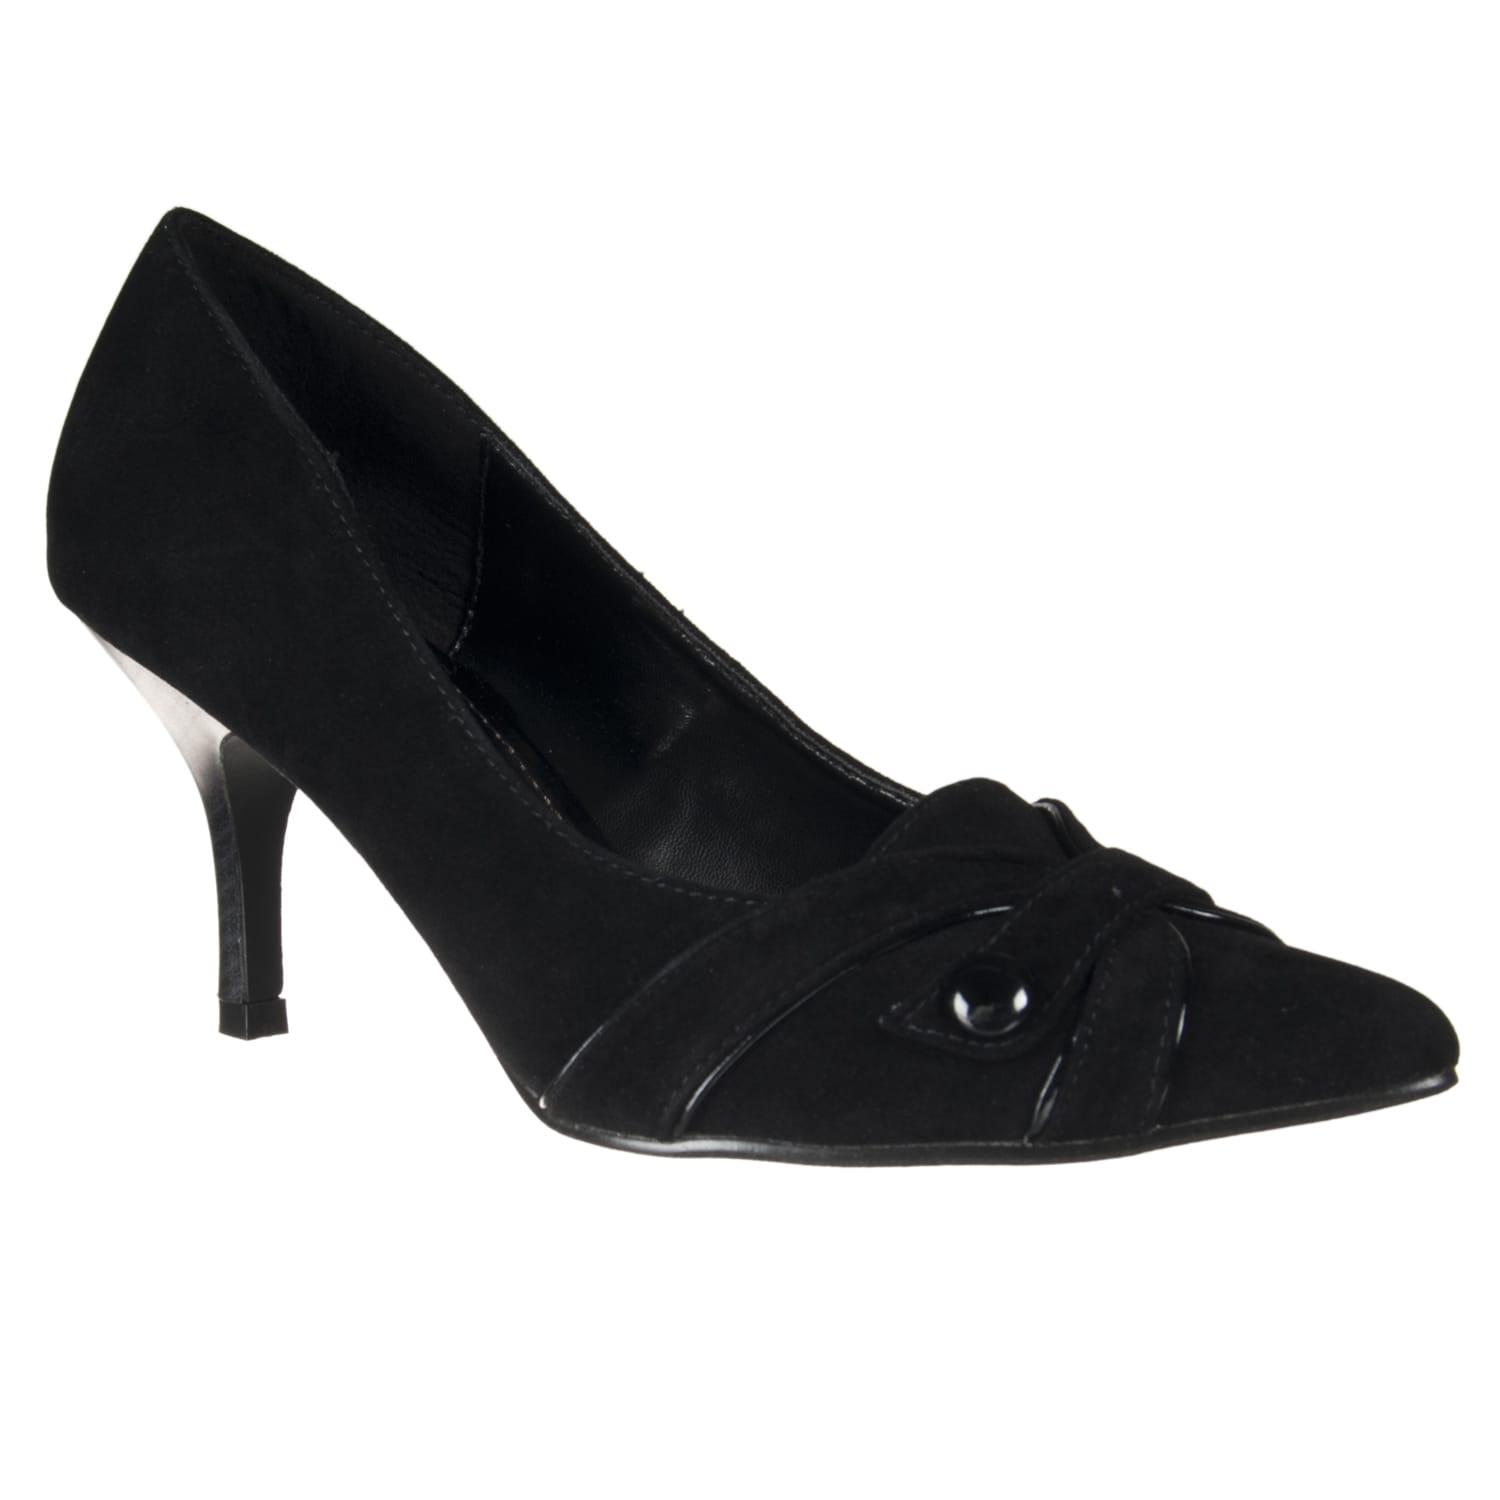 Riverberry Women's 'Exhbitor' Black Pointed-toe Pumps